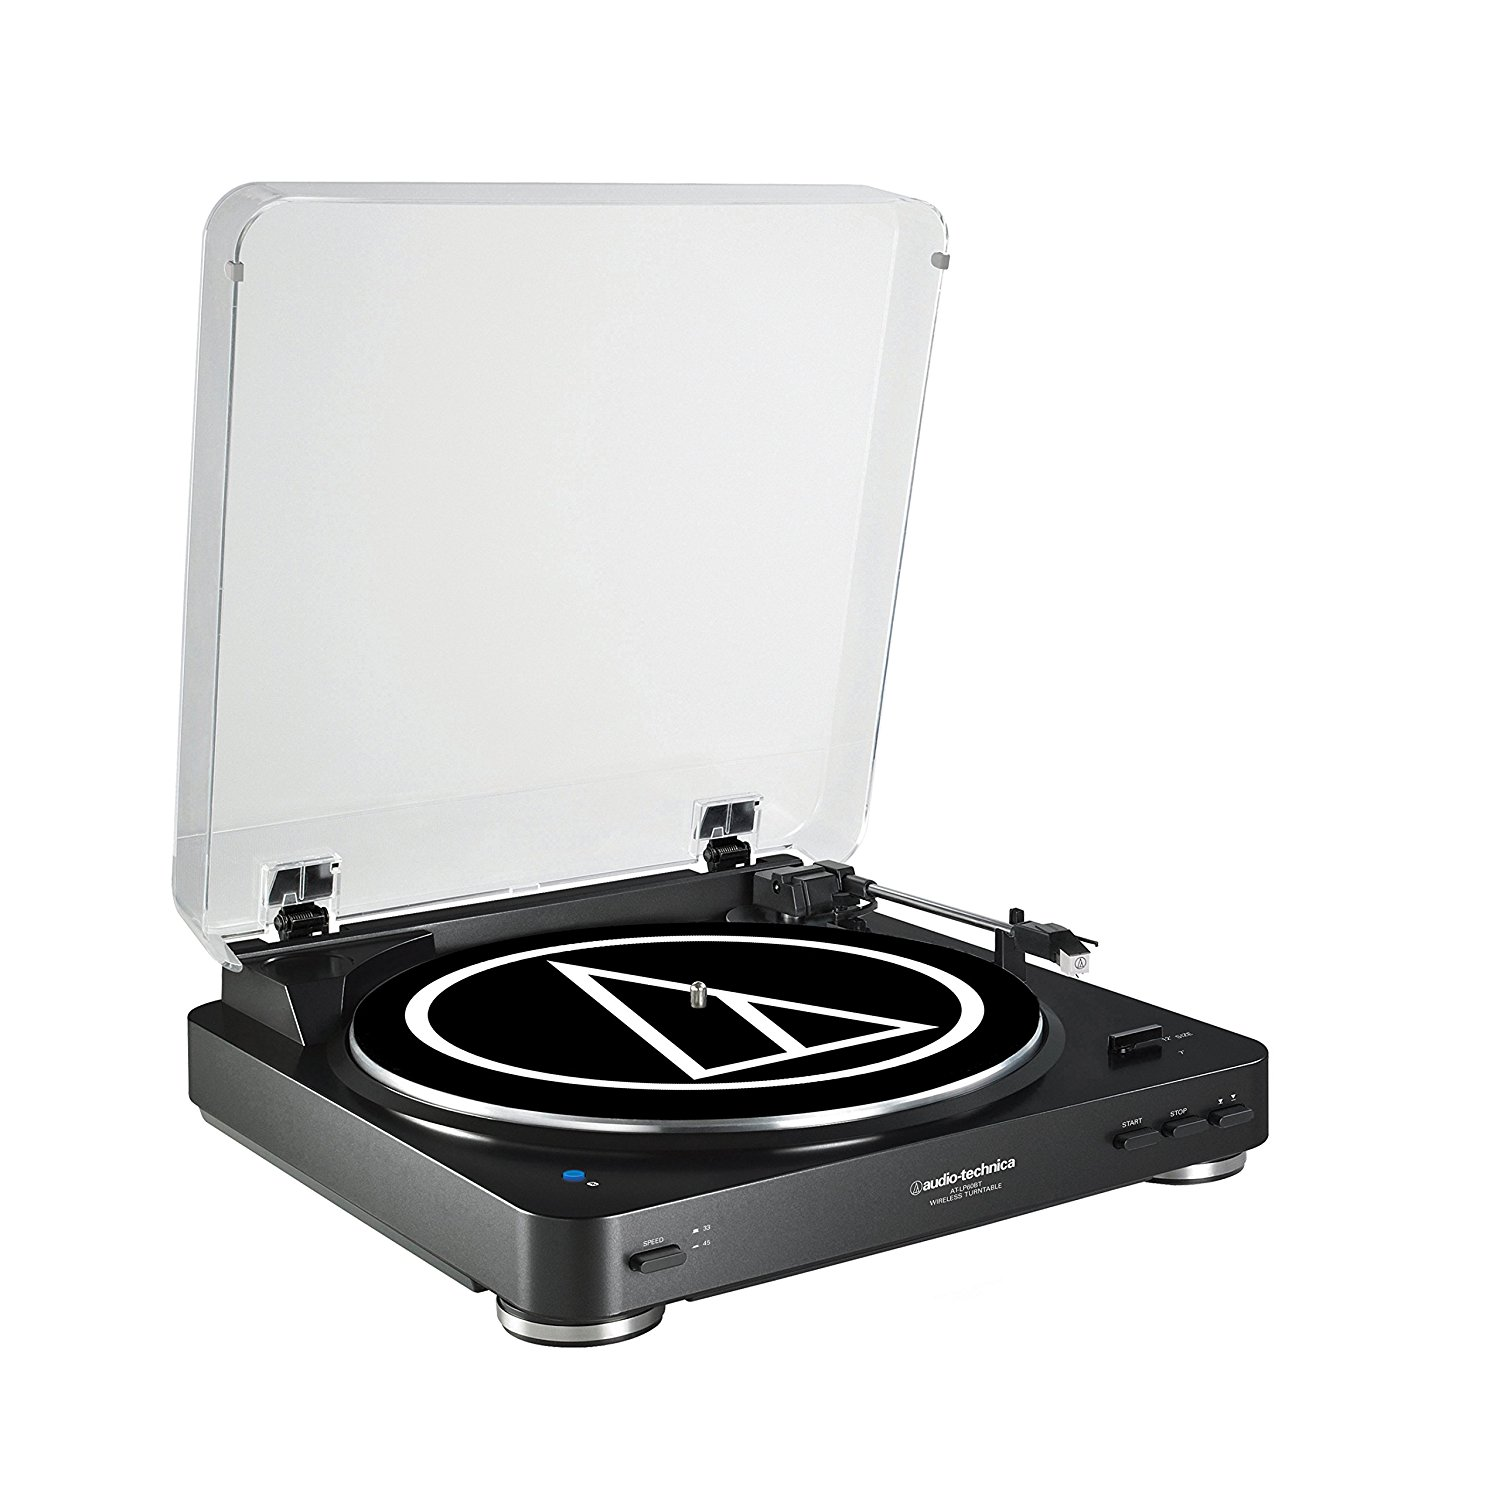 Record Player clipart old school #9